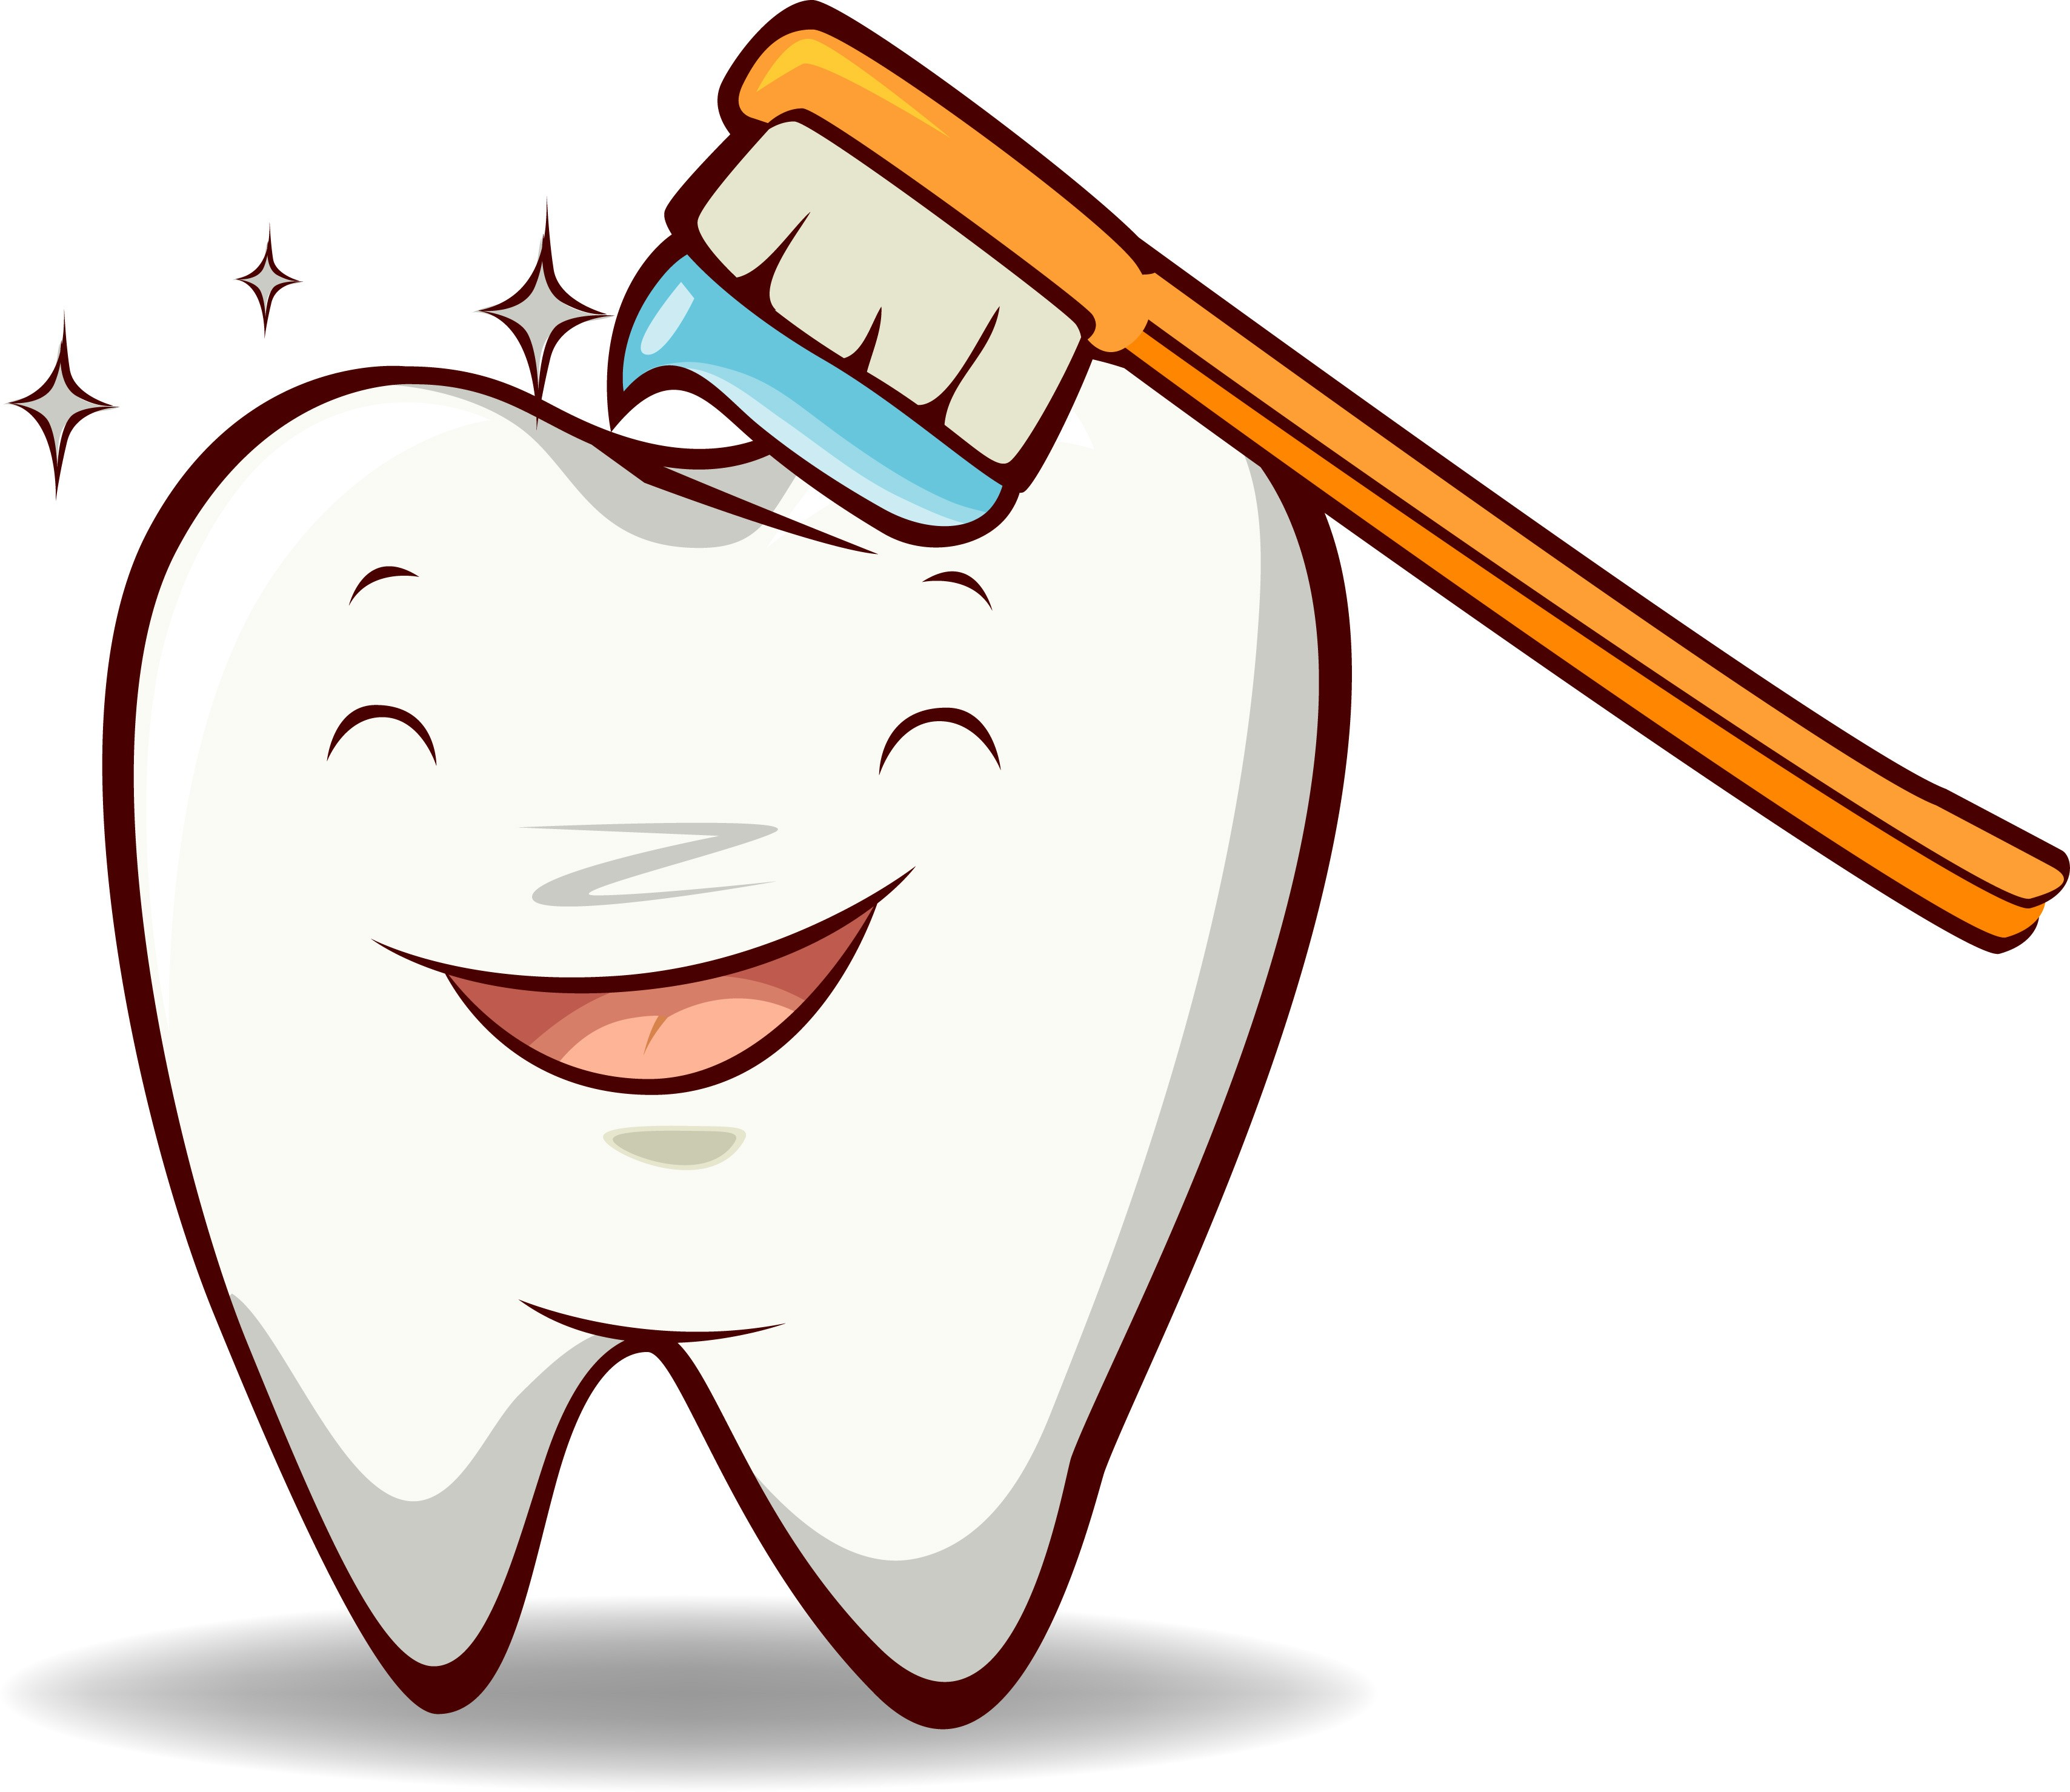 3416x2957 Teeth Clip Art Free Collection Download And Share Teeth Clip Art